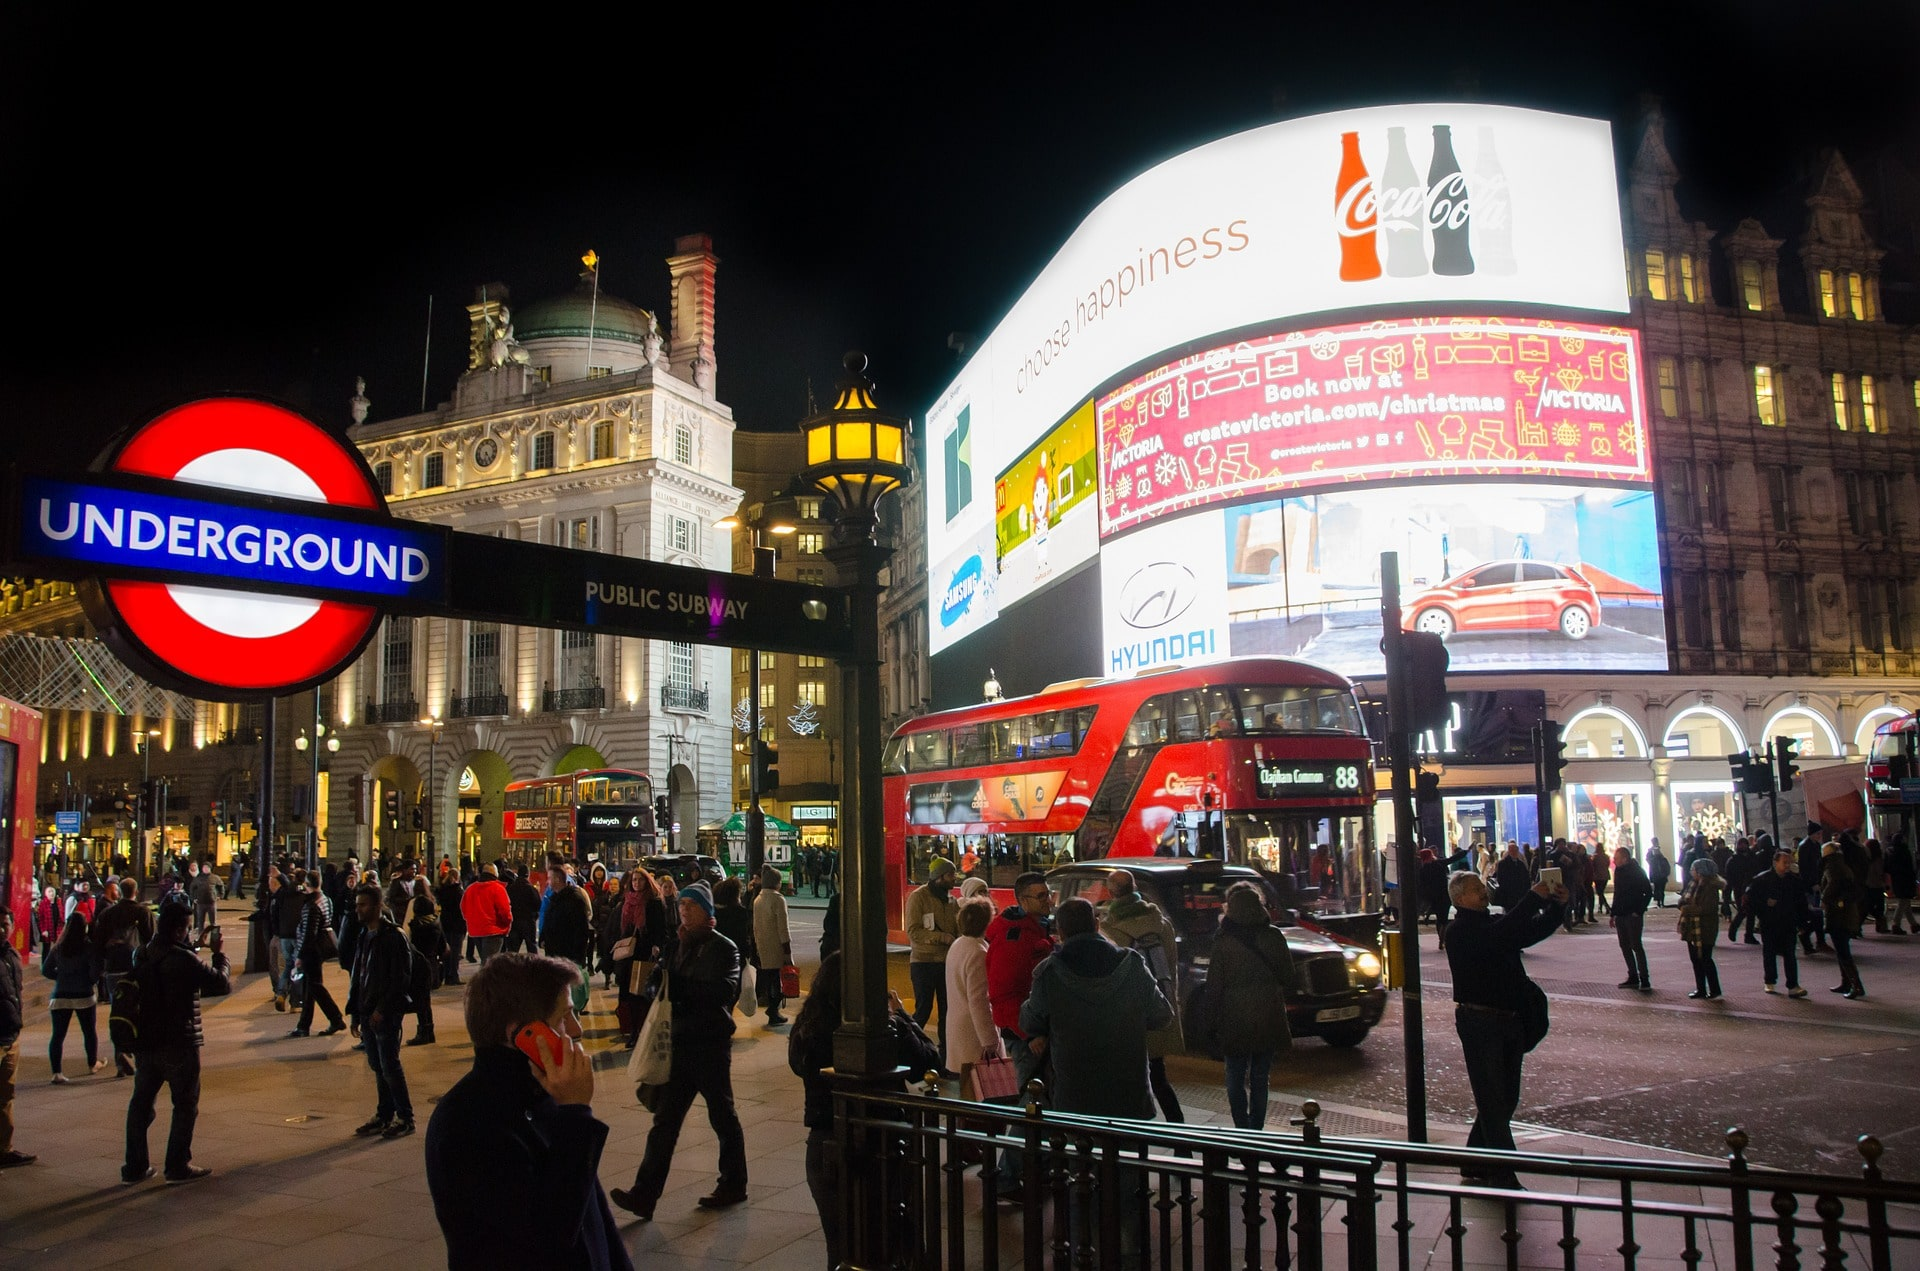 Checking out Piccadilly Circus is a fun thing to do in London